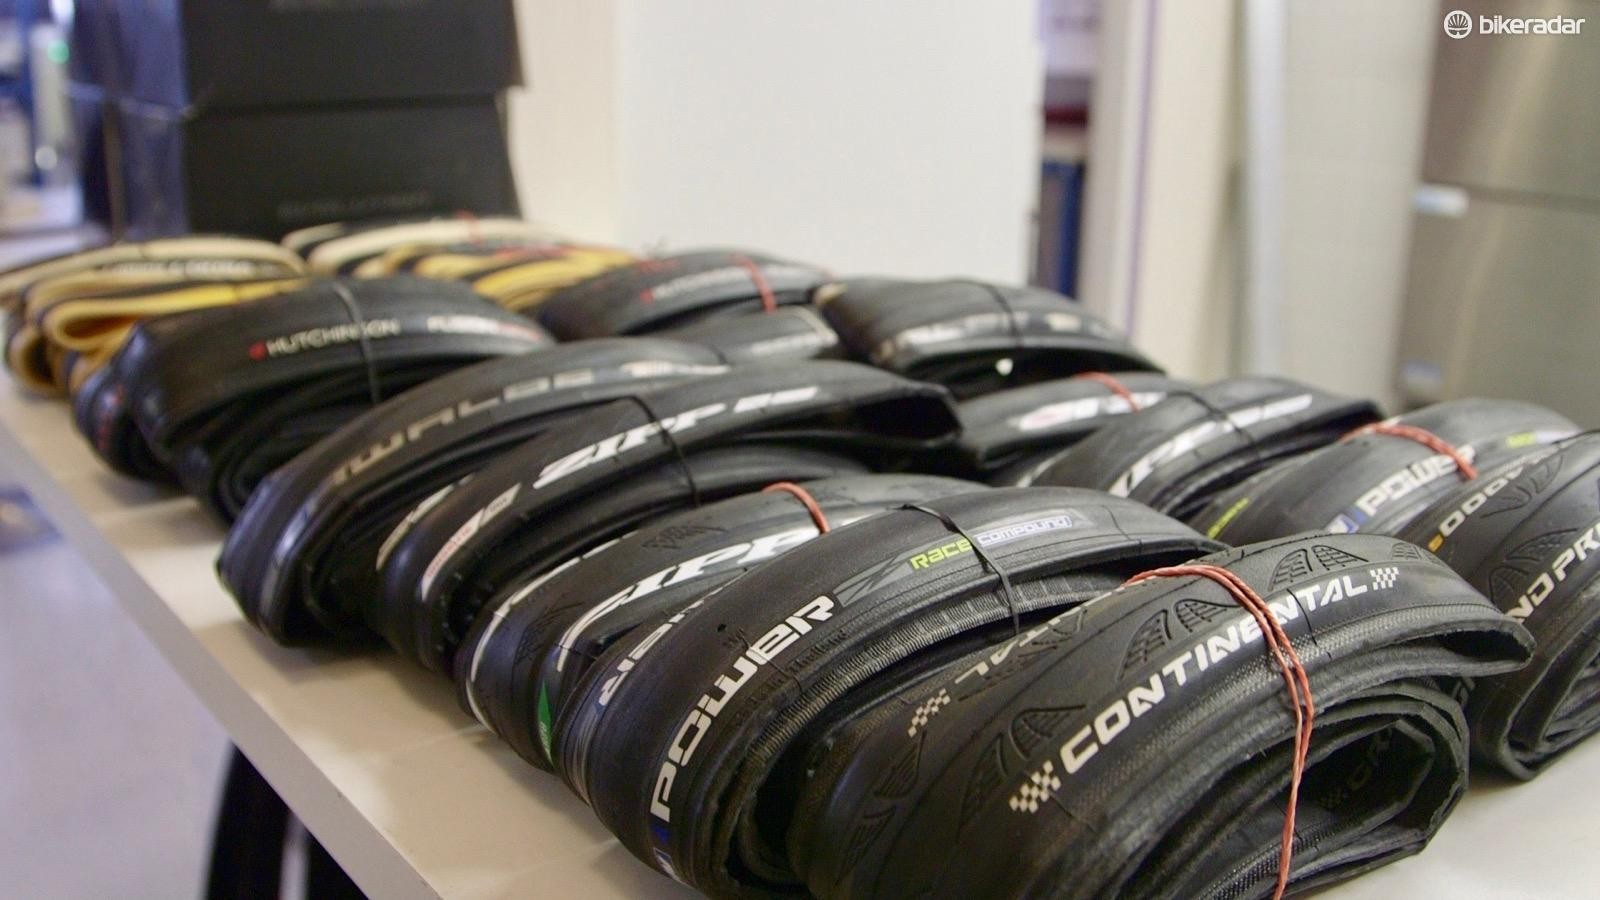 Wheel Energy tested 10 pairs of performance tires for BikeRadar and the Power Competition was the fastest clincher